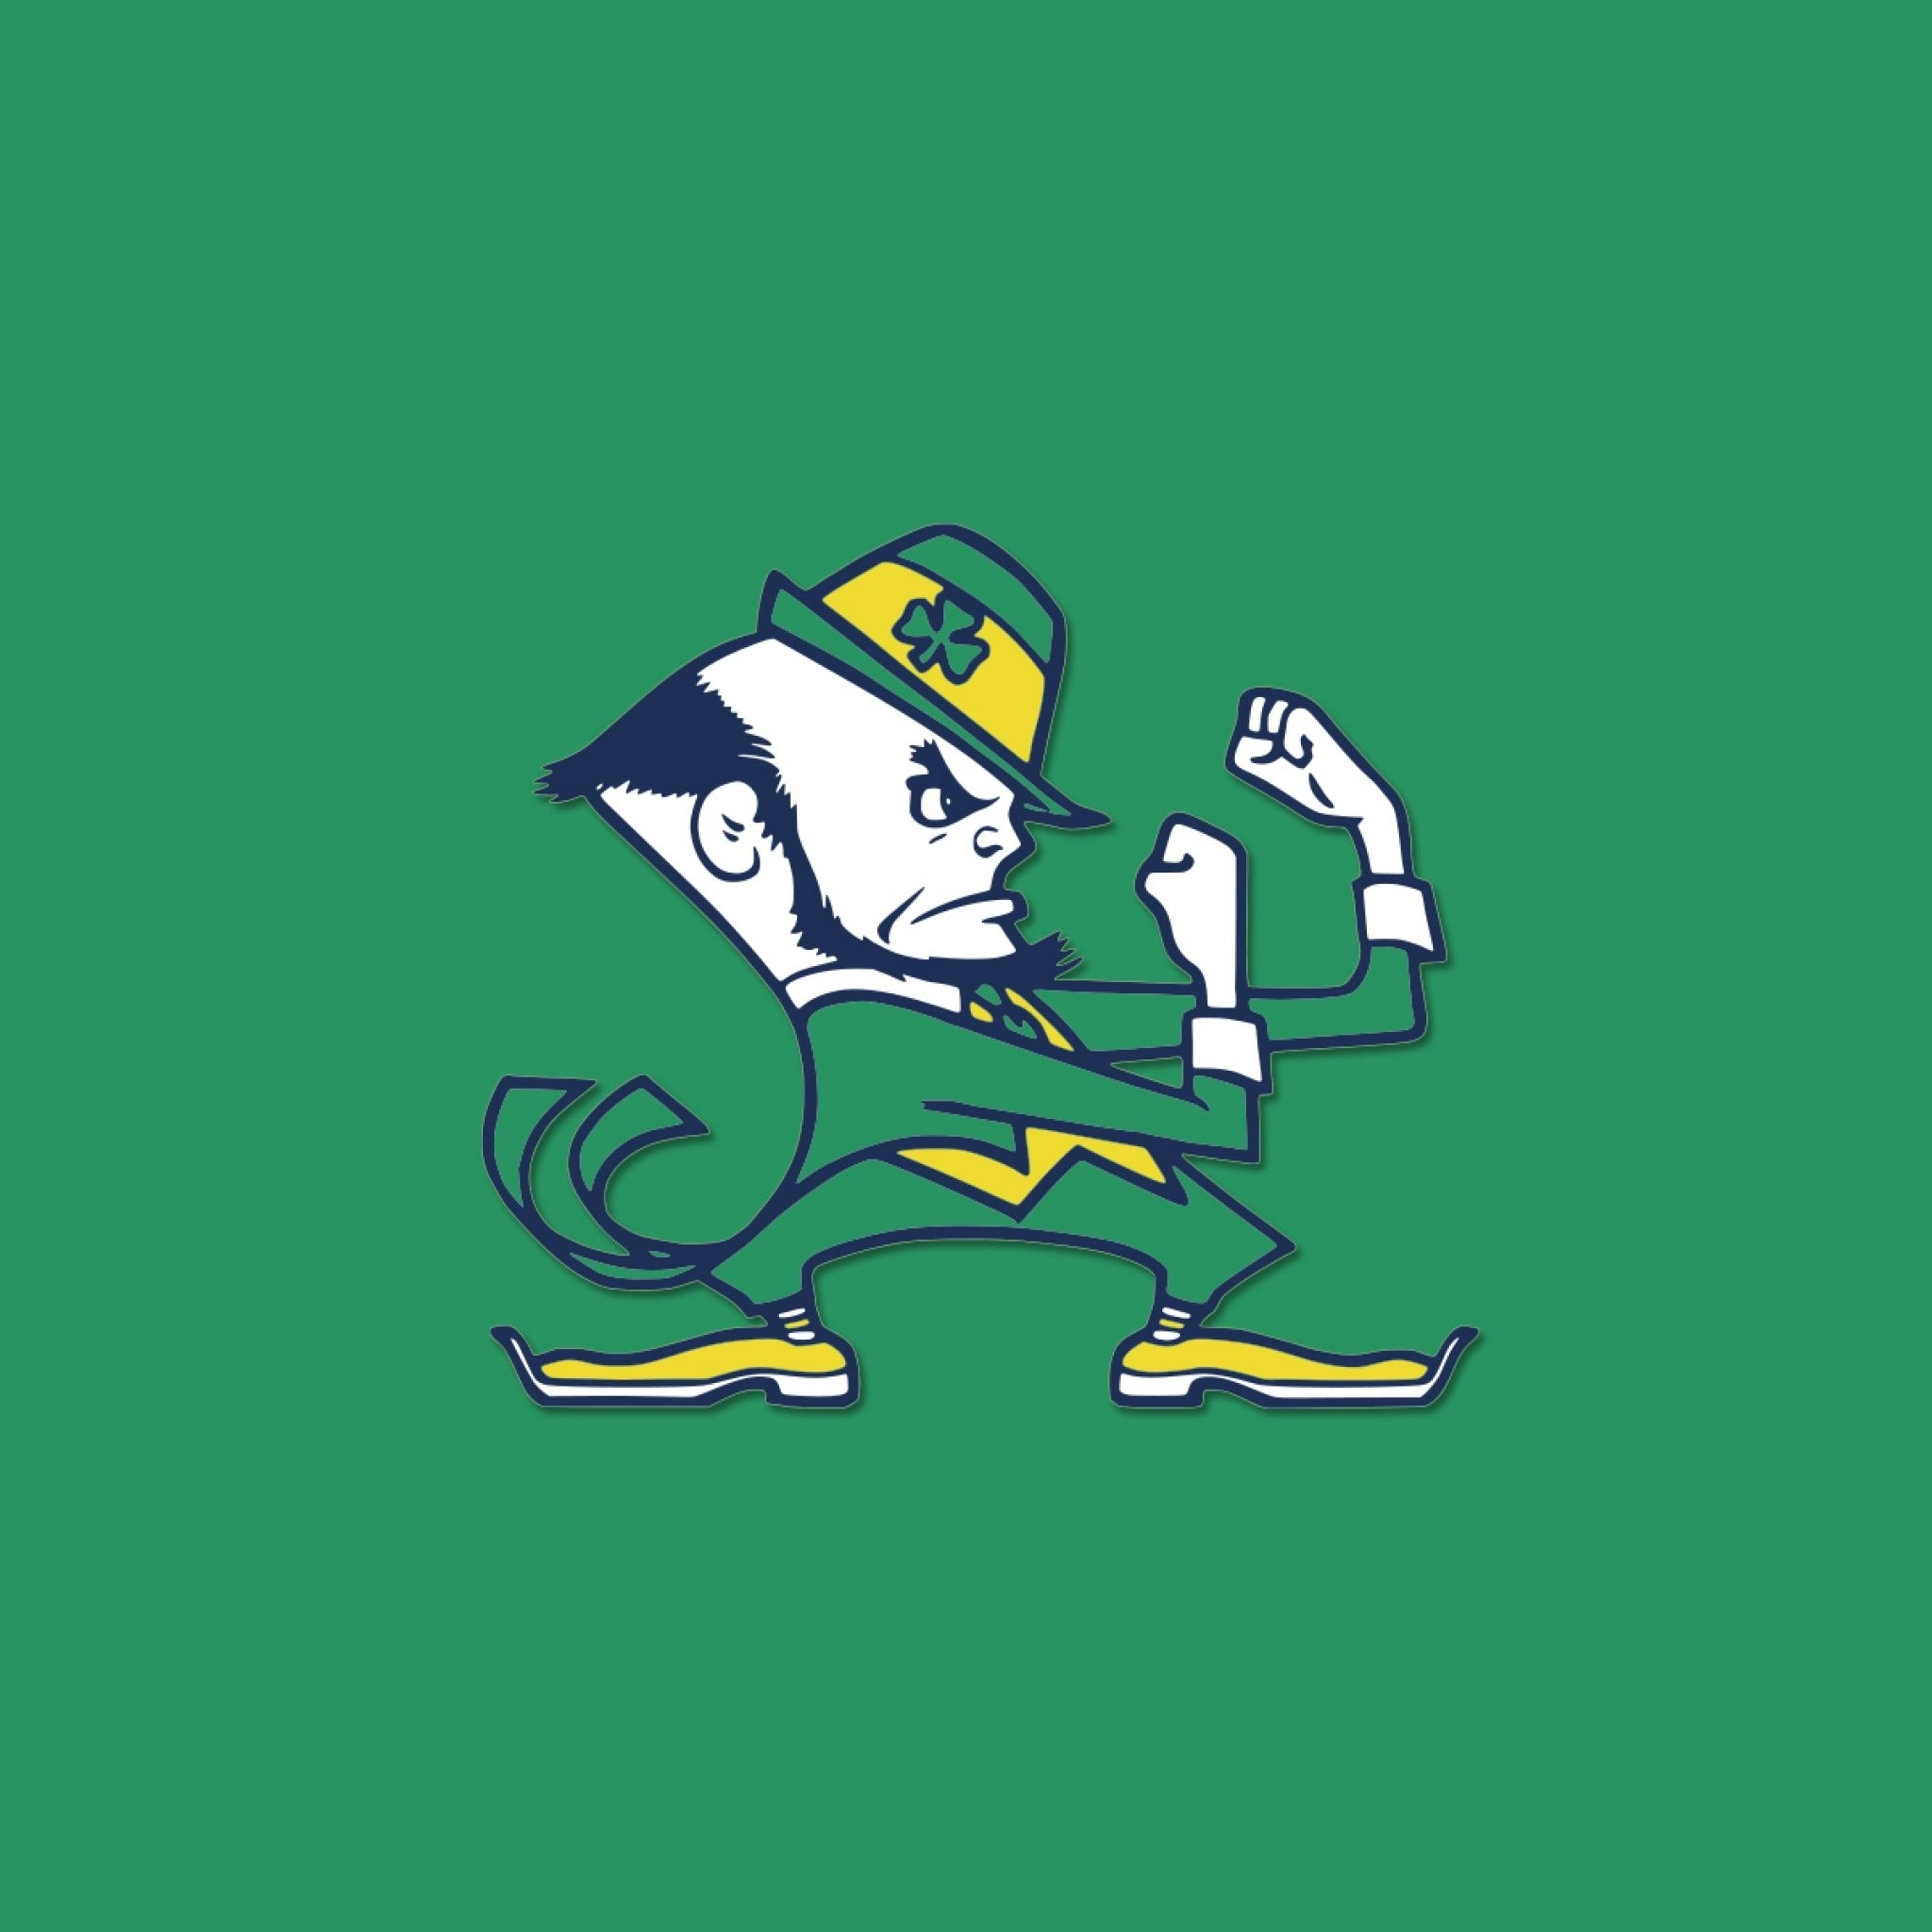 download wallpaper 2048x2048 notre dame fighting irish, logo | epic